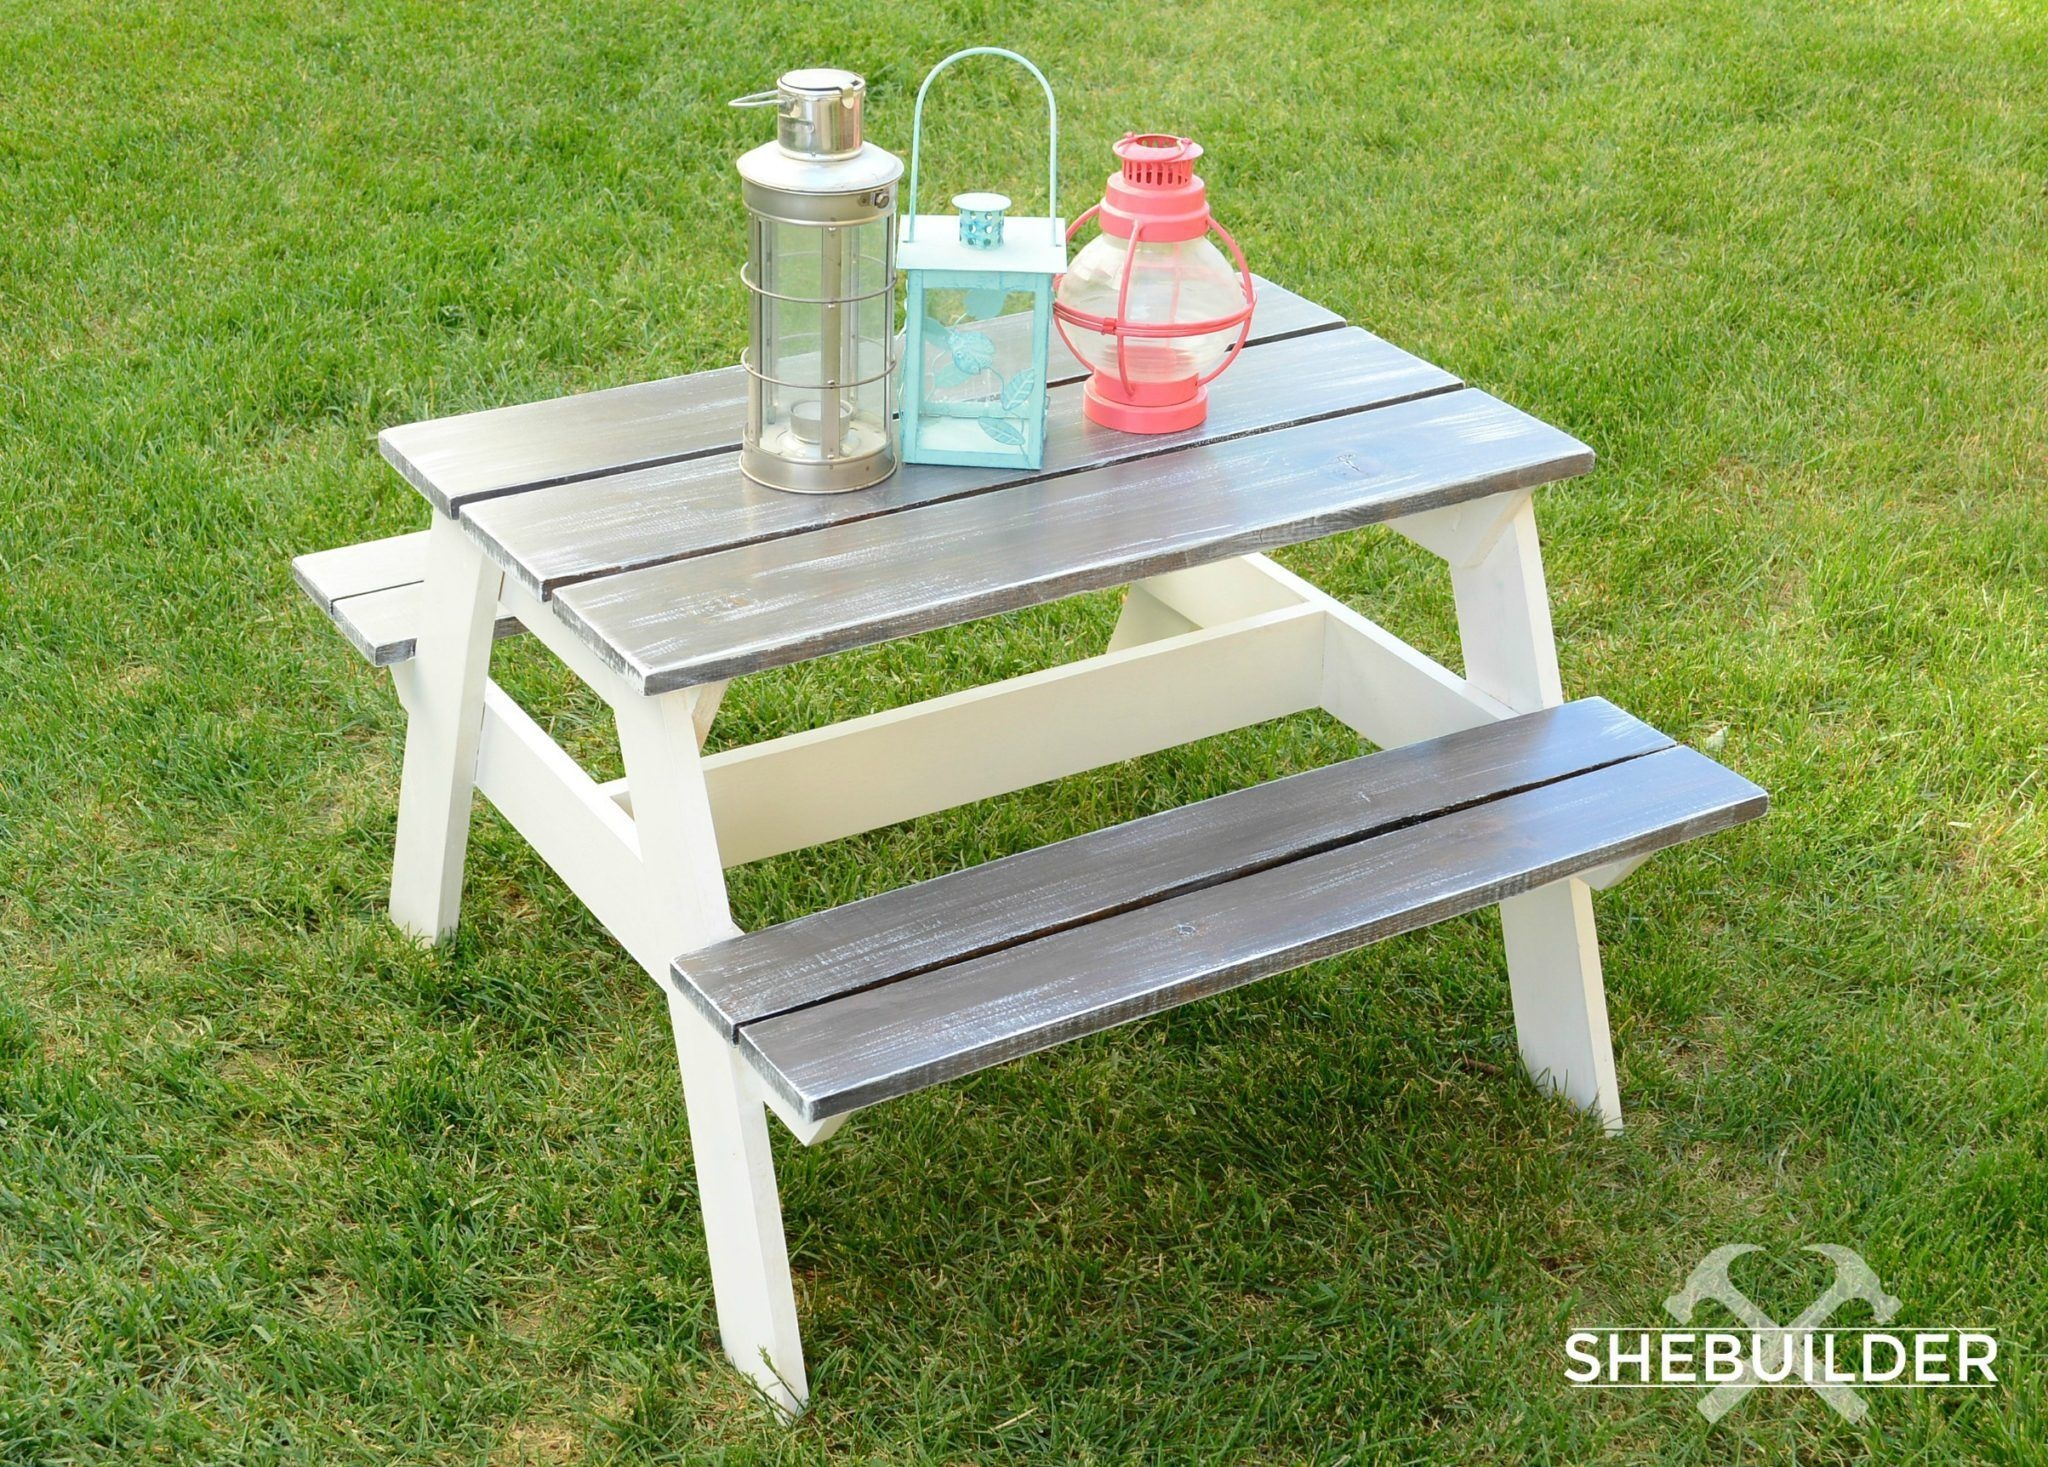 Diy Kids Picnic Table Plans From Anna White Kids Picnic Table Kids Picnic Table Plans Diy Picnic Table